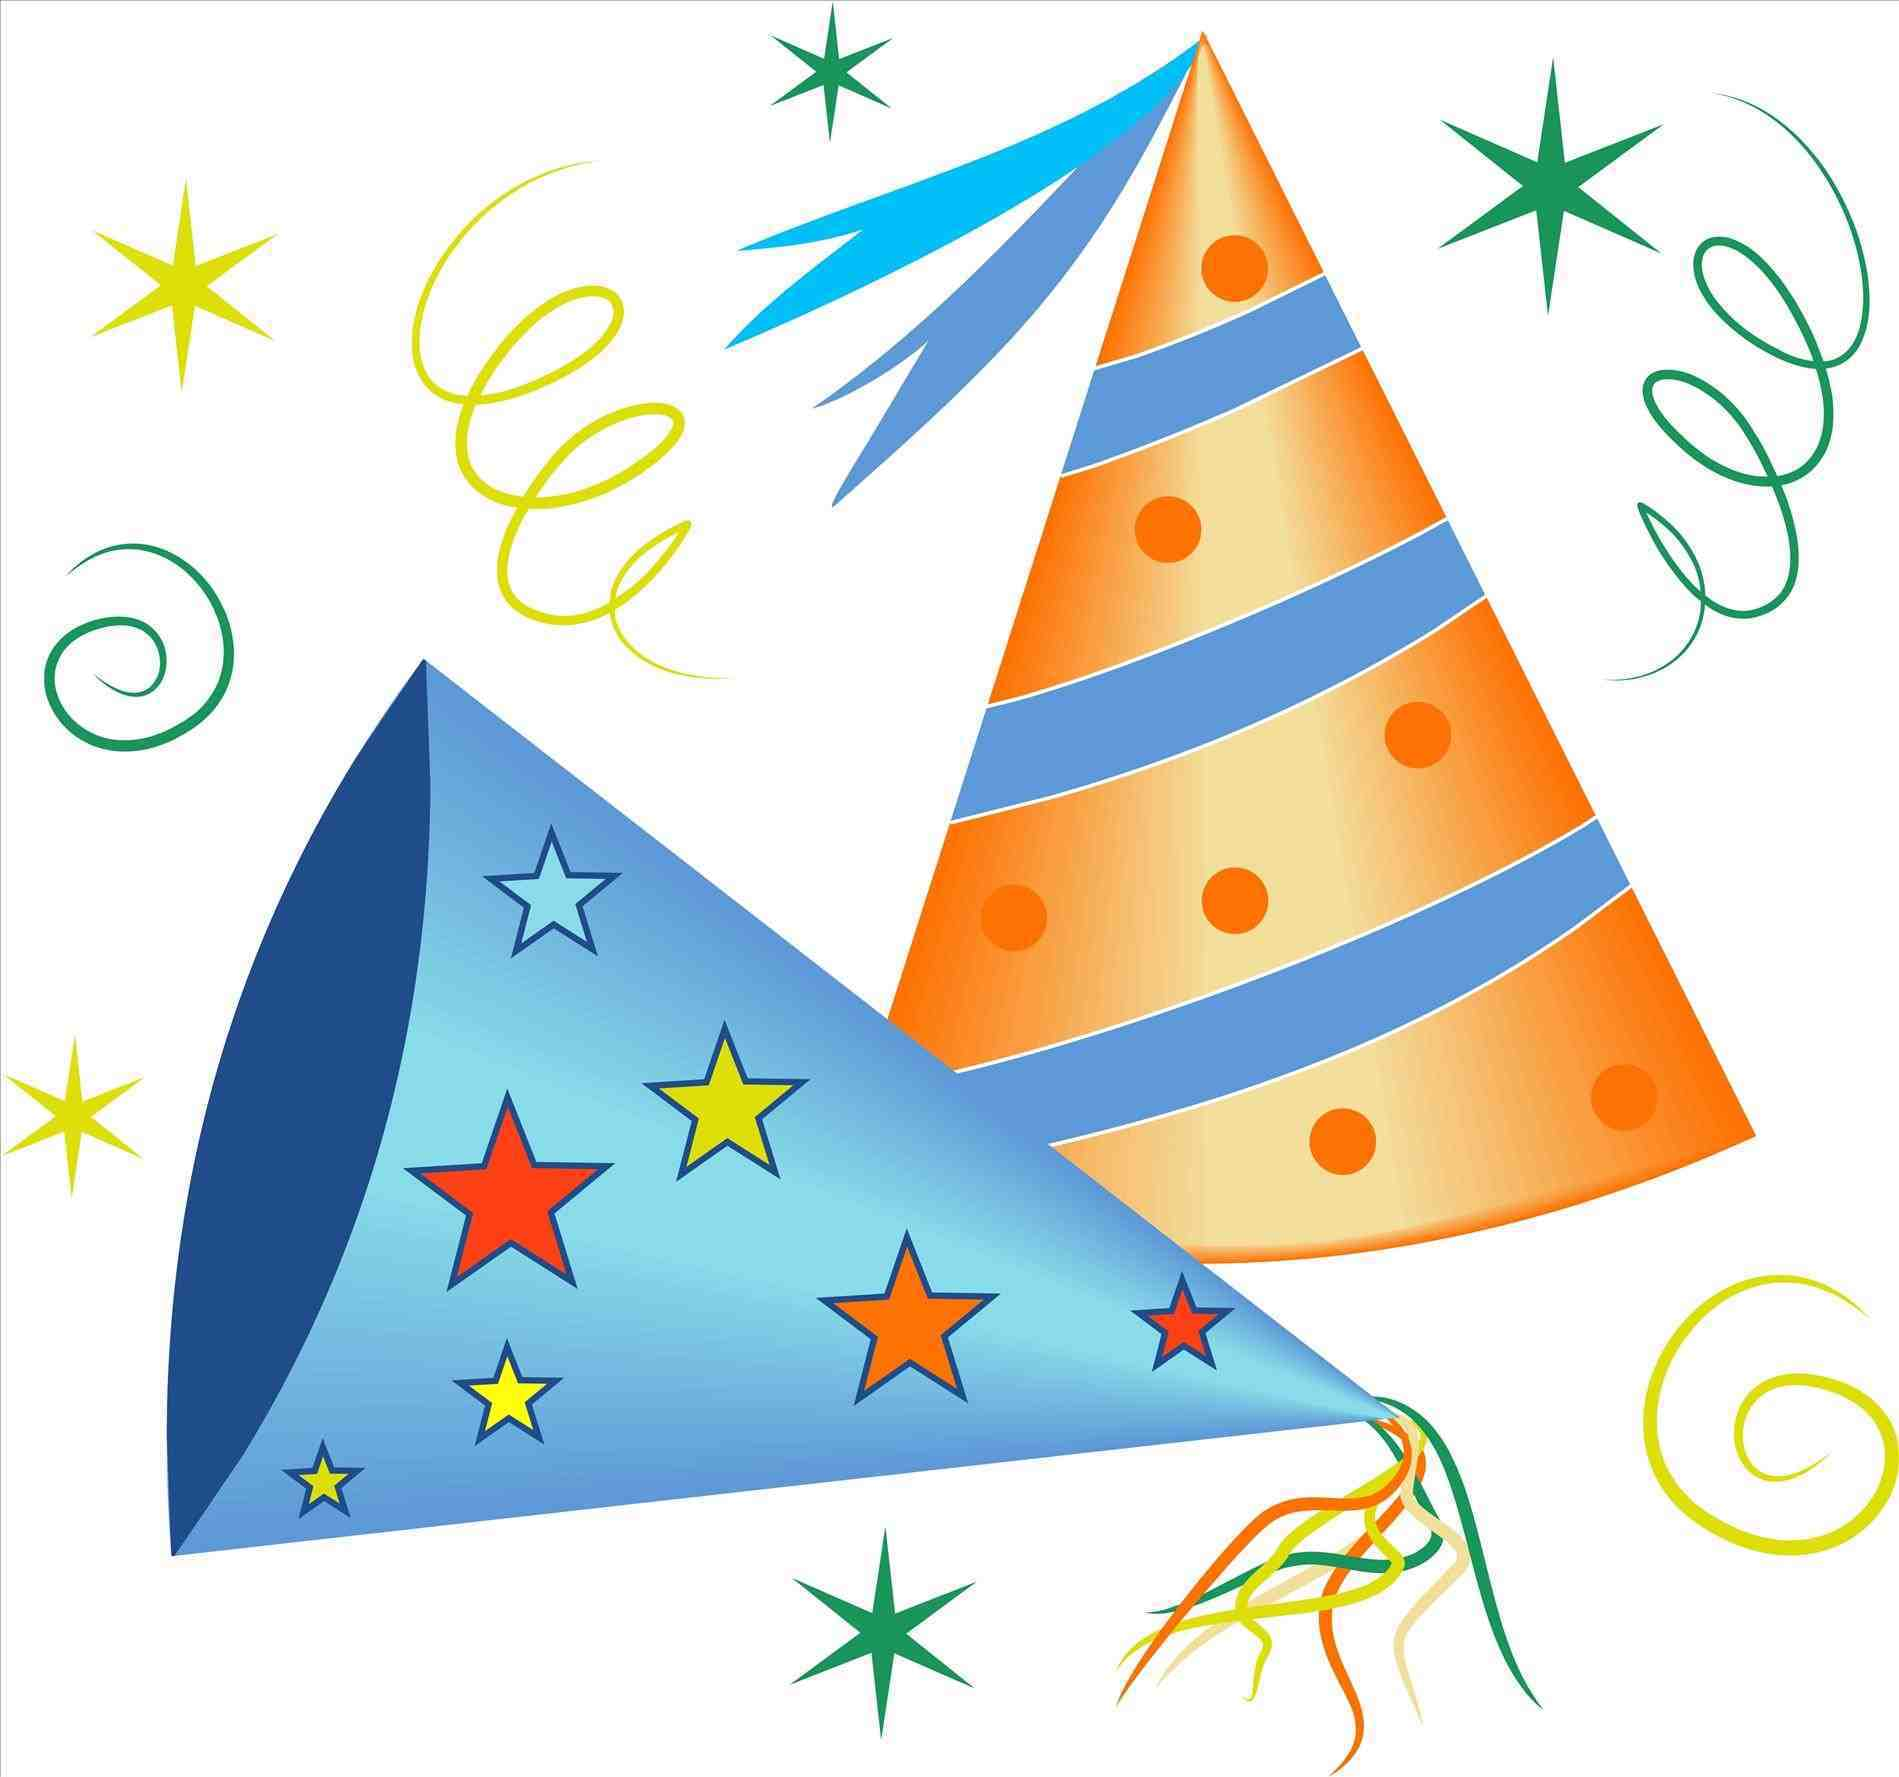 hight resolution of 1899x1777 birthday party hat clip art 2018